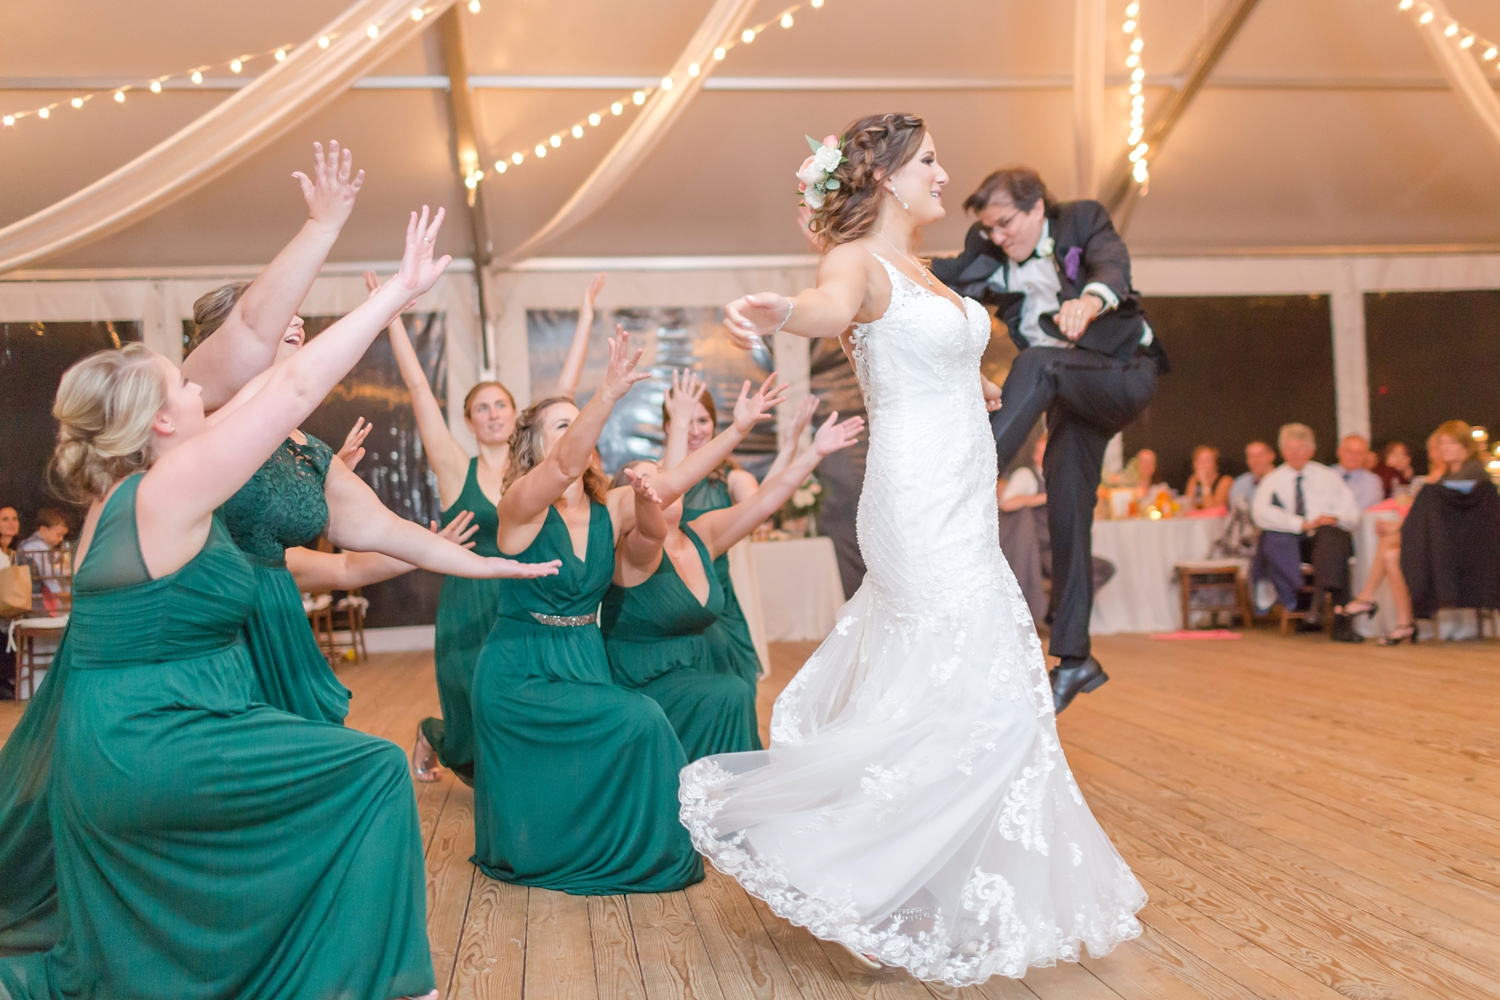 Halfway through Rebecca's dance with her dad the bridesmaids joined them on the dance floor and this moment happened! So awesome!